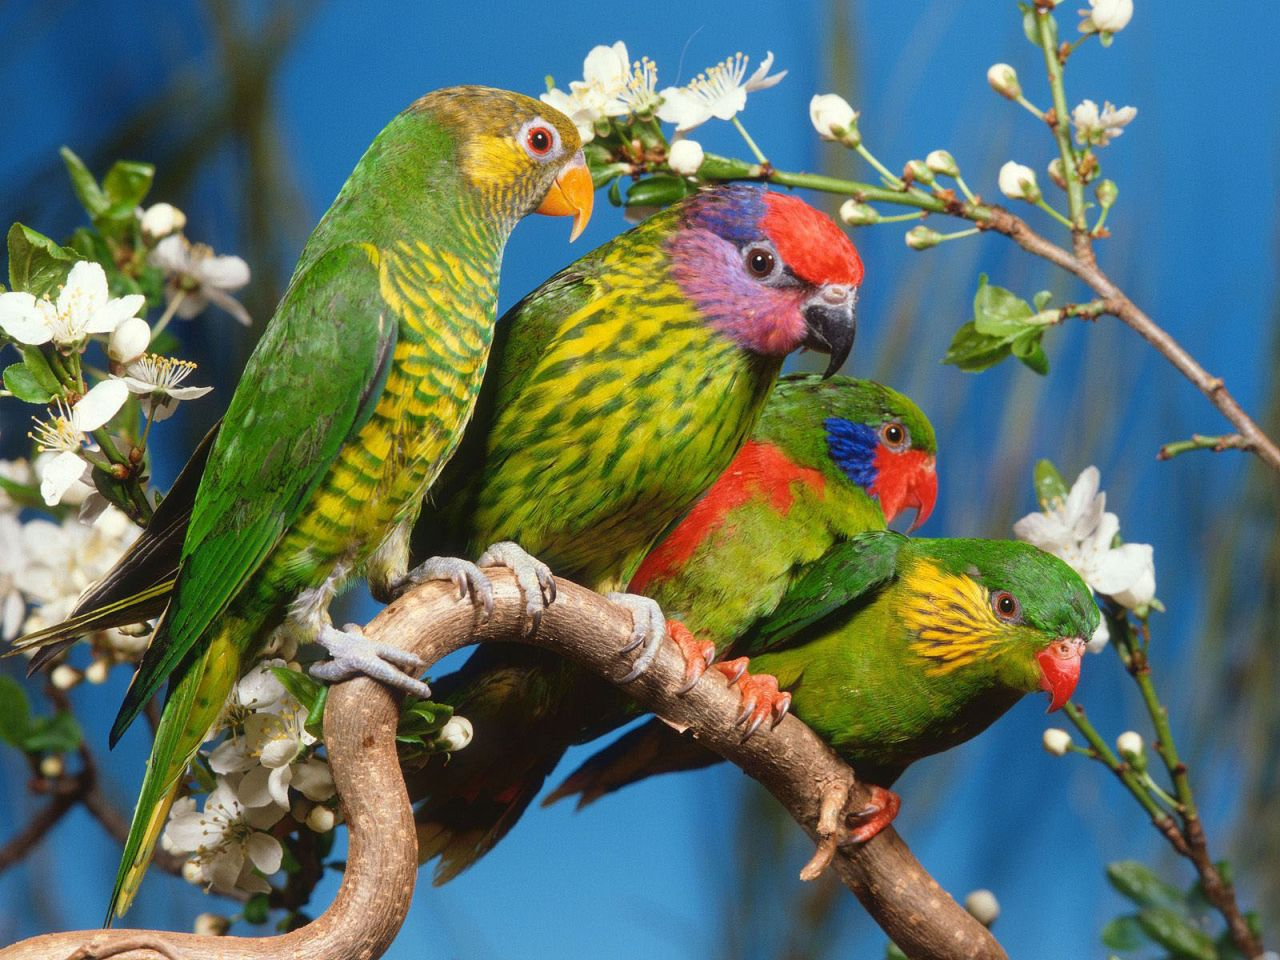 Four Colorful Birds On A Branch Wallpaper 1280x960